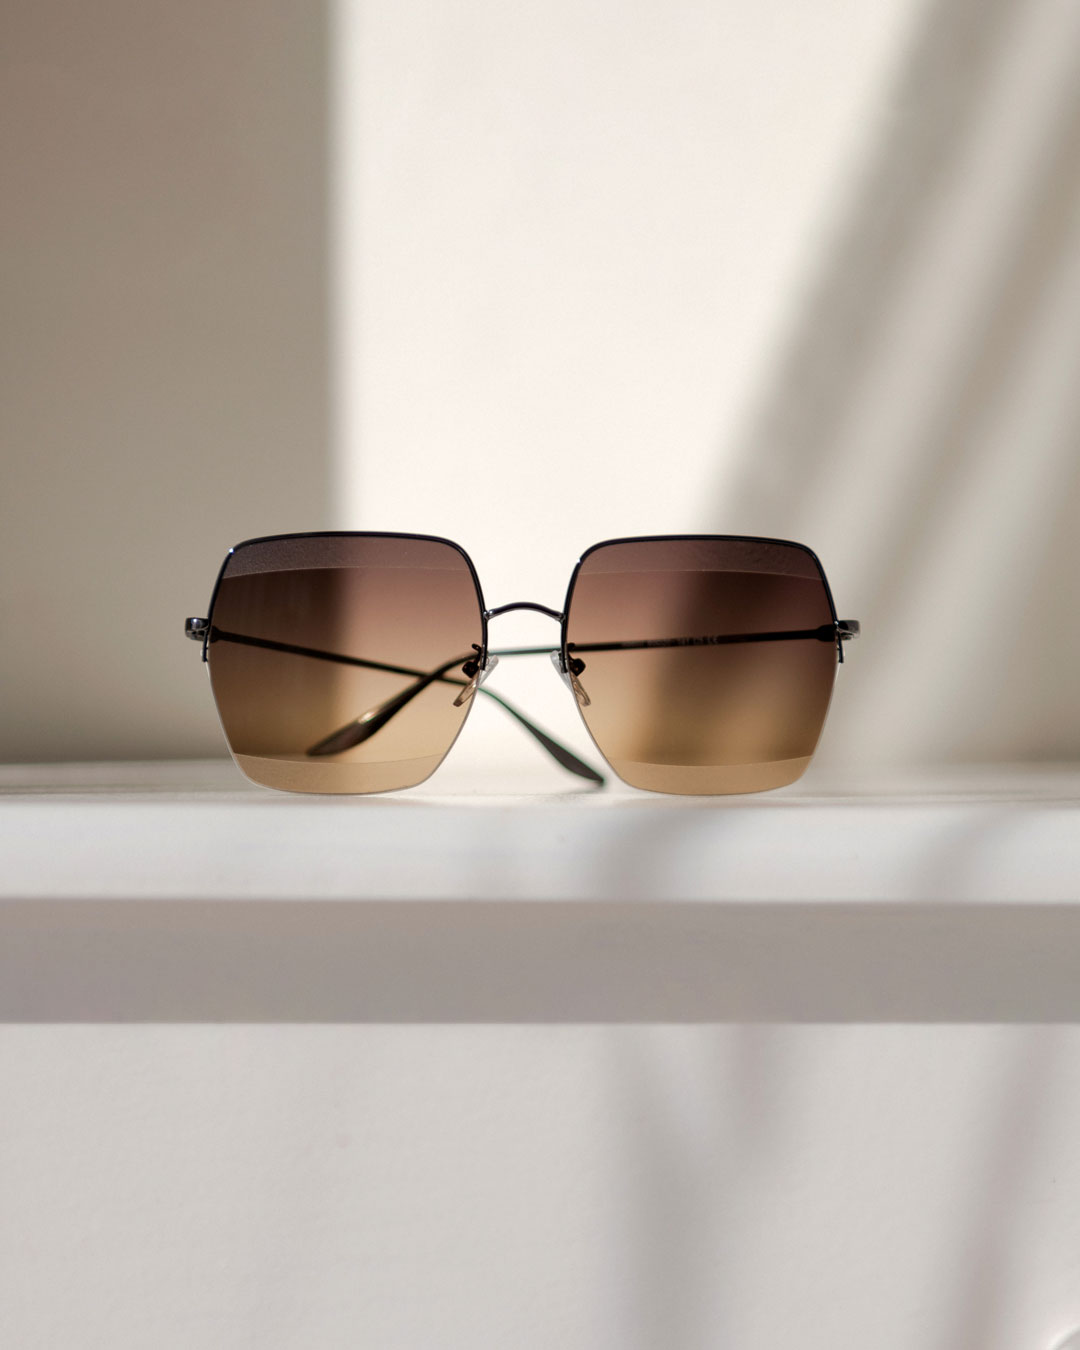 Brown ombre sunglasses with a metal frame rest of a white surface